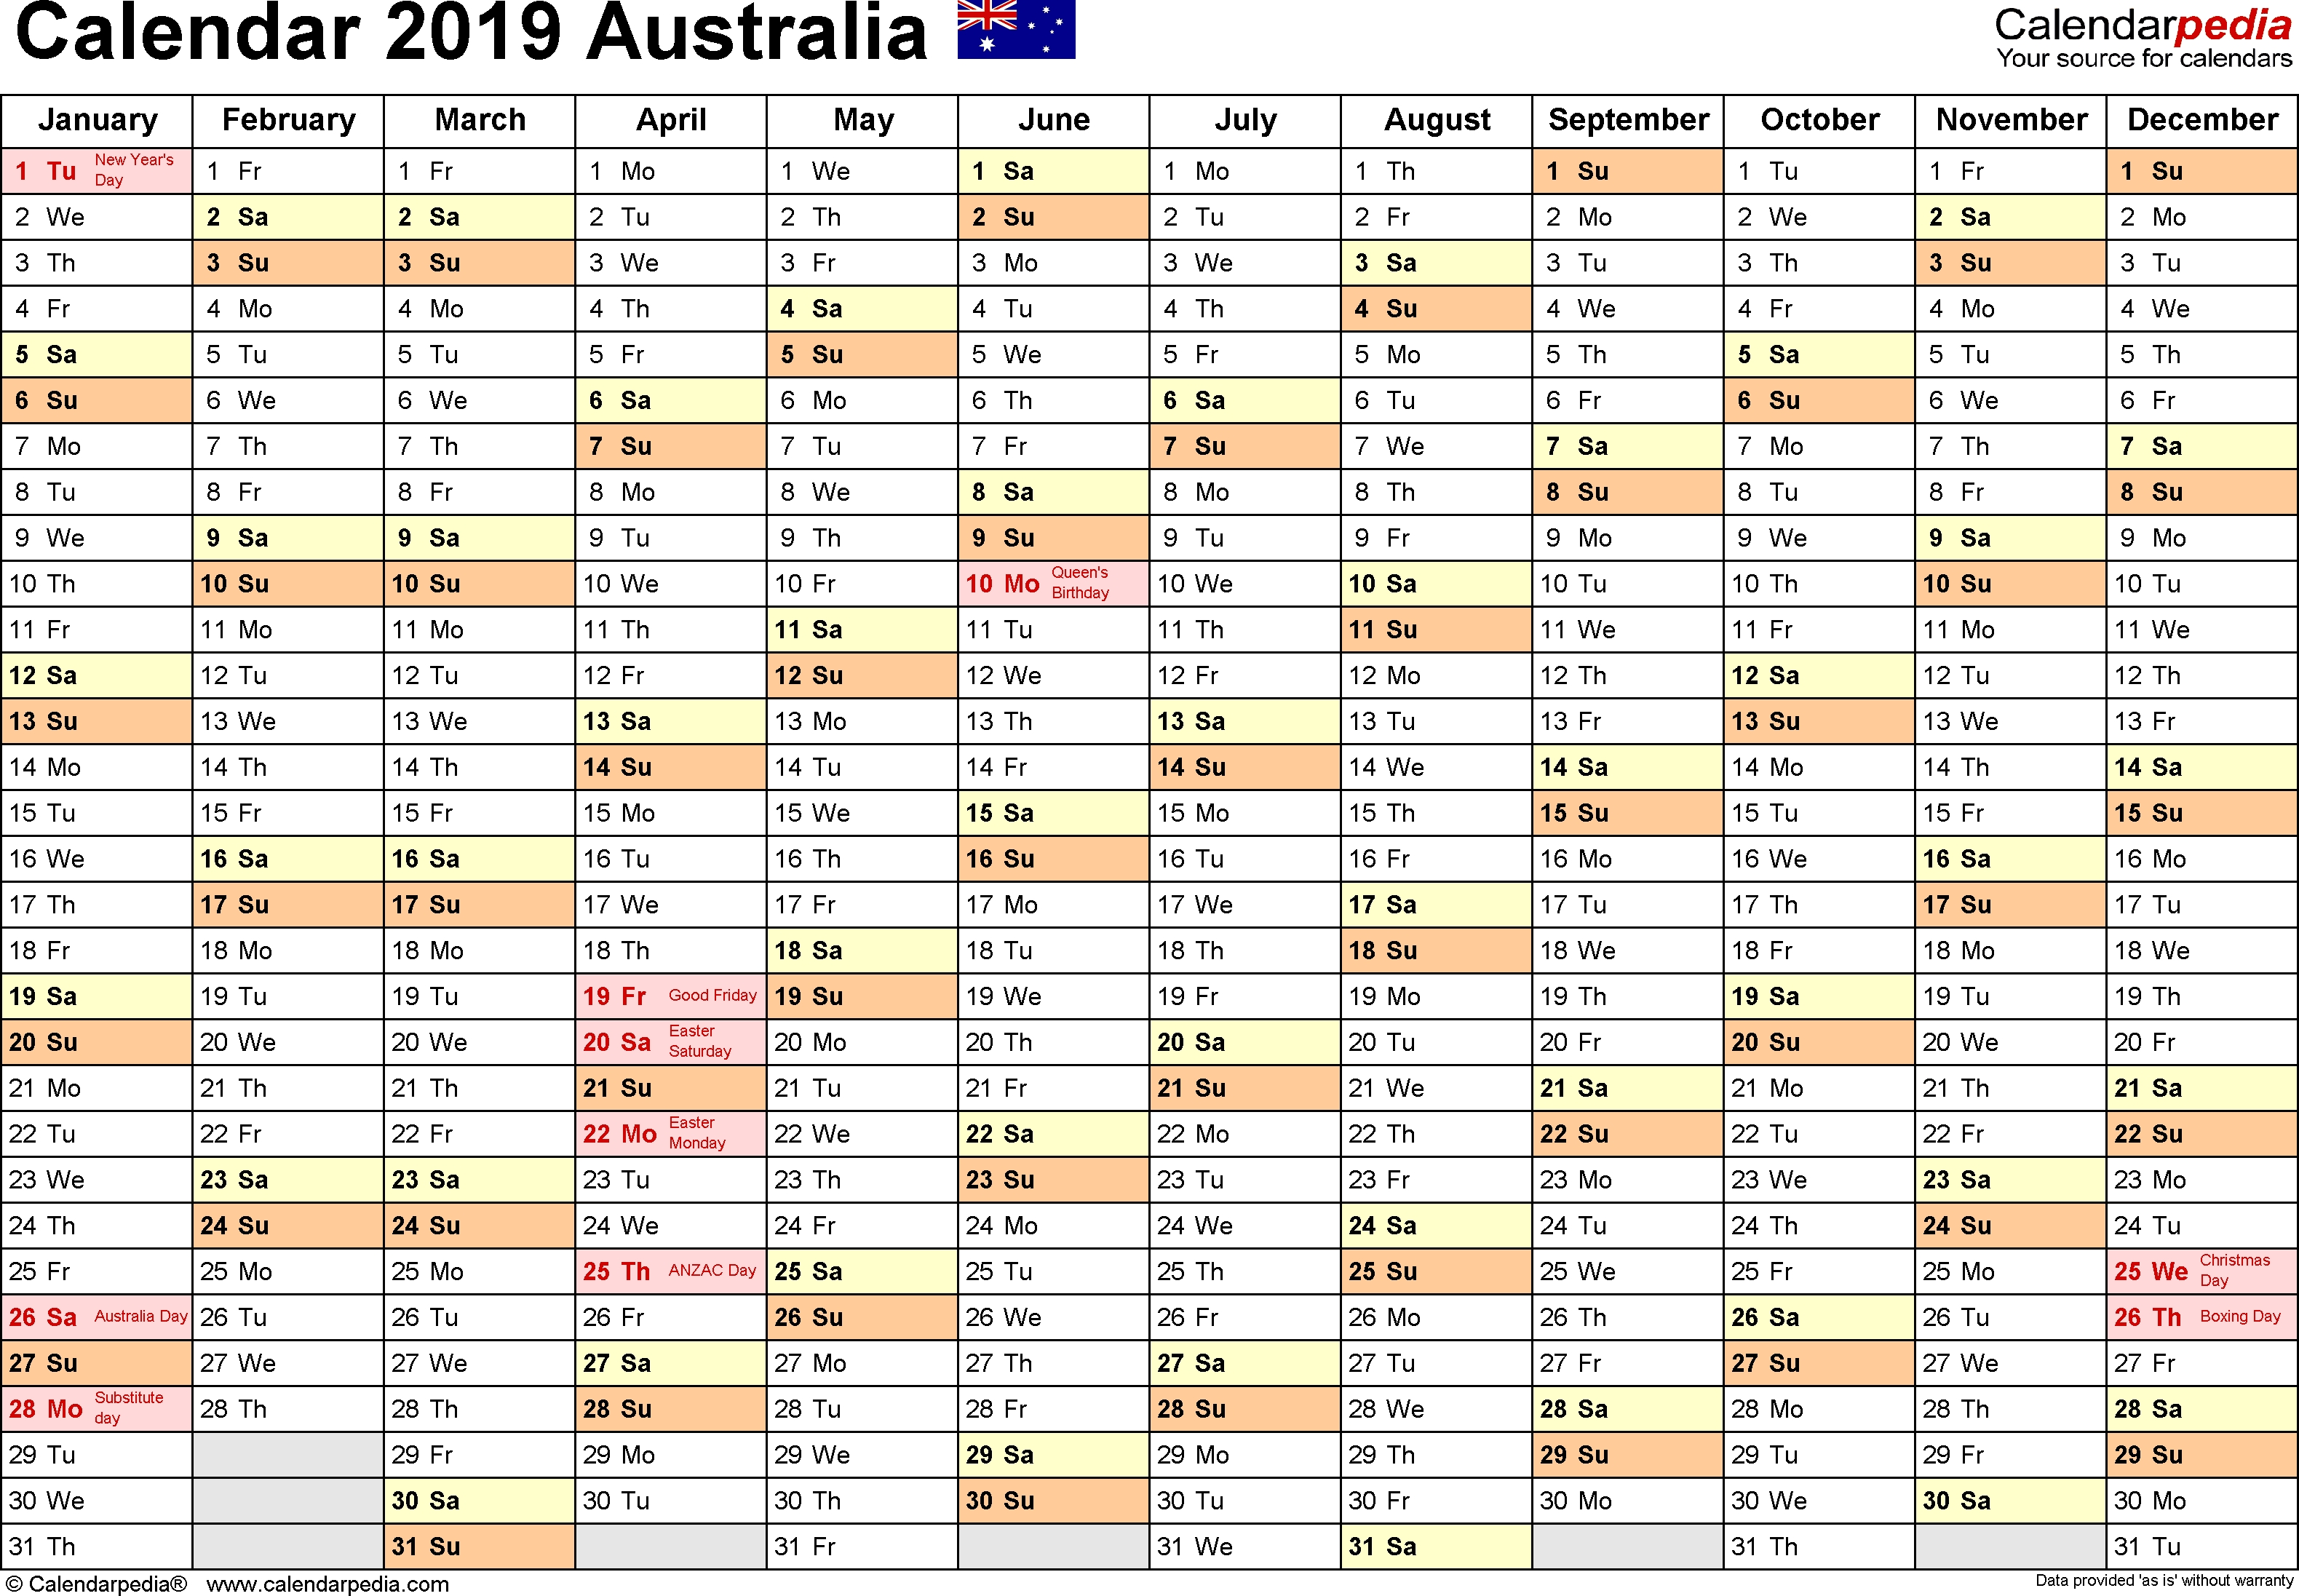 Australia Calendar 2019 - Free Printable Excel Templates within September Content Calender Aus Perth